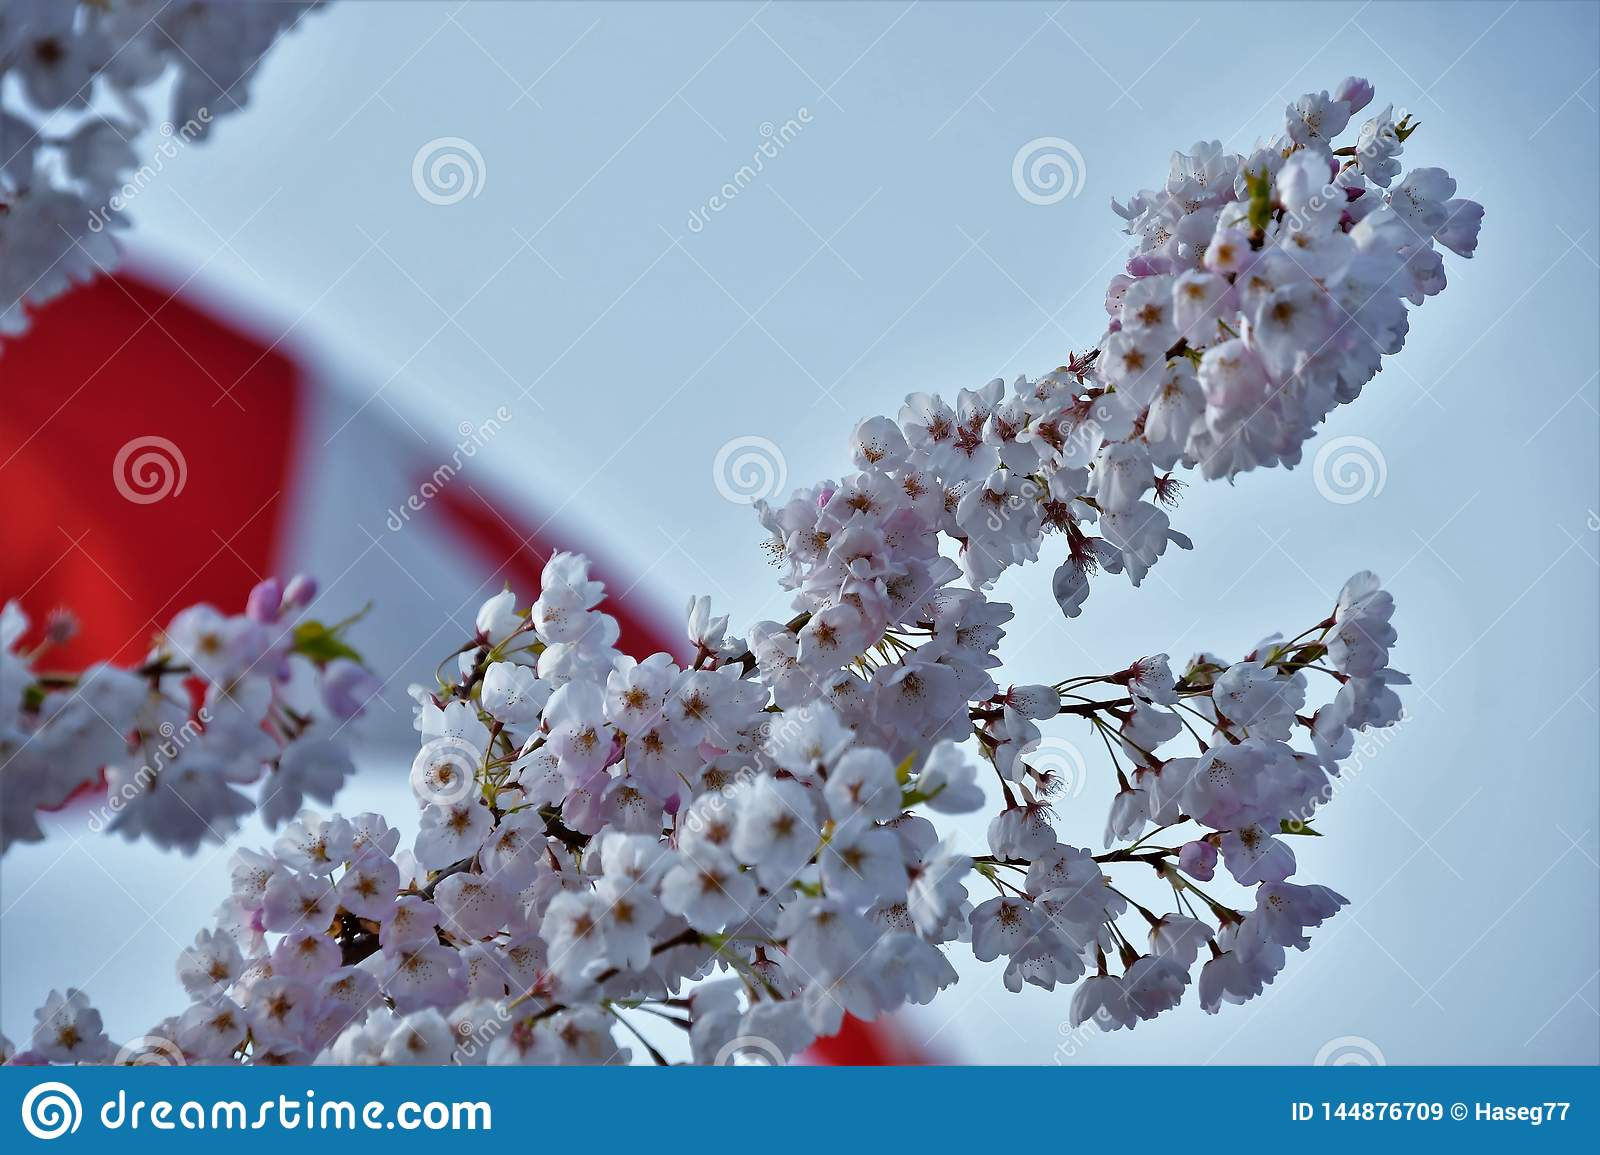 The cherry blossom against the Canada flag.